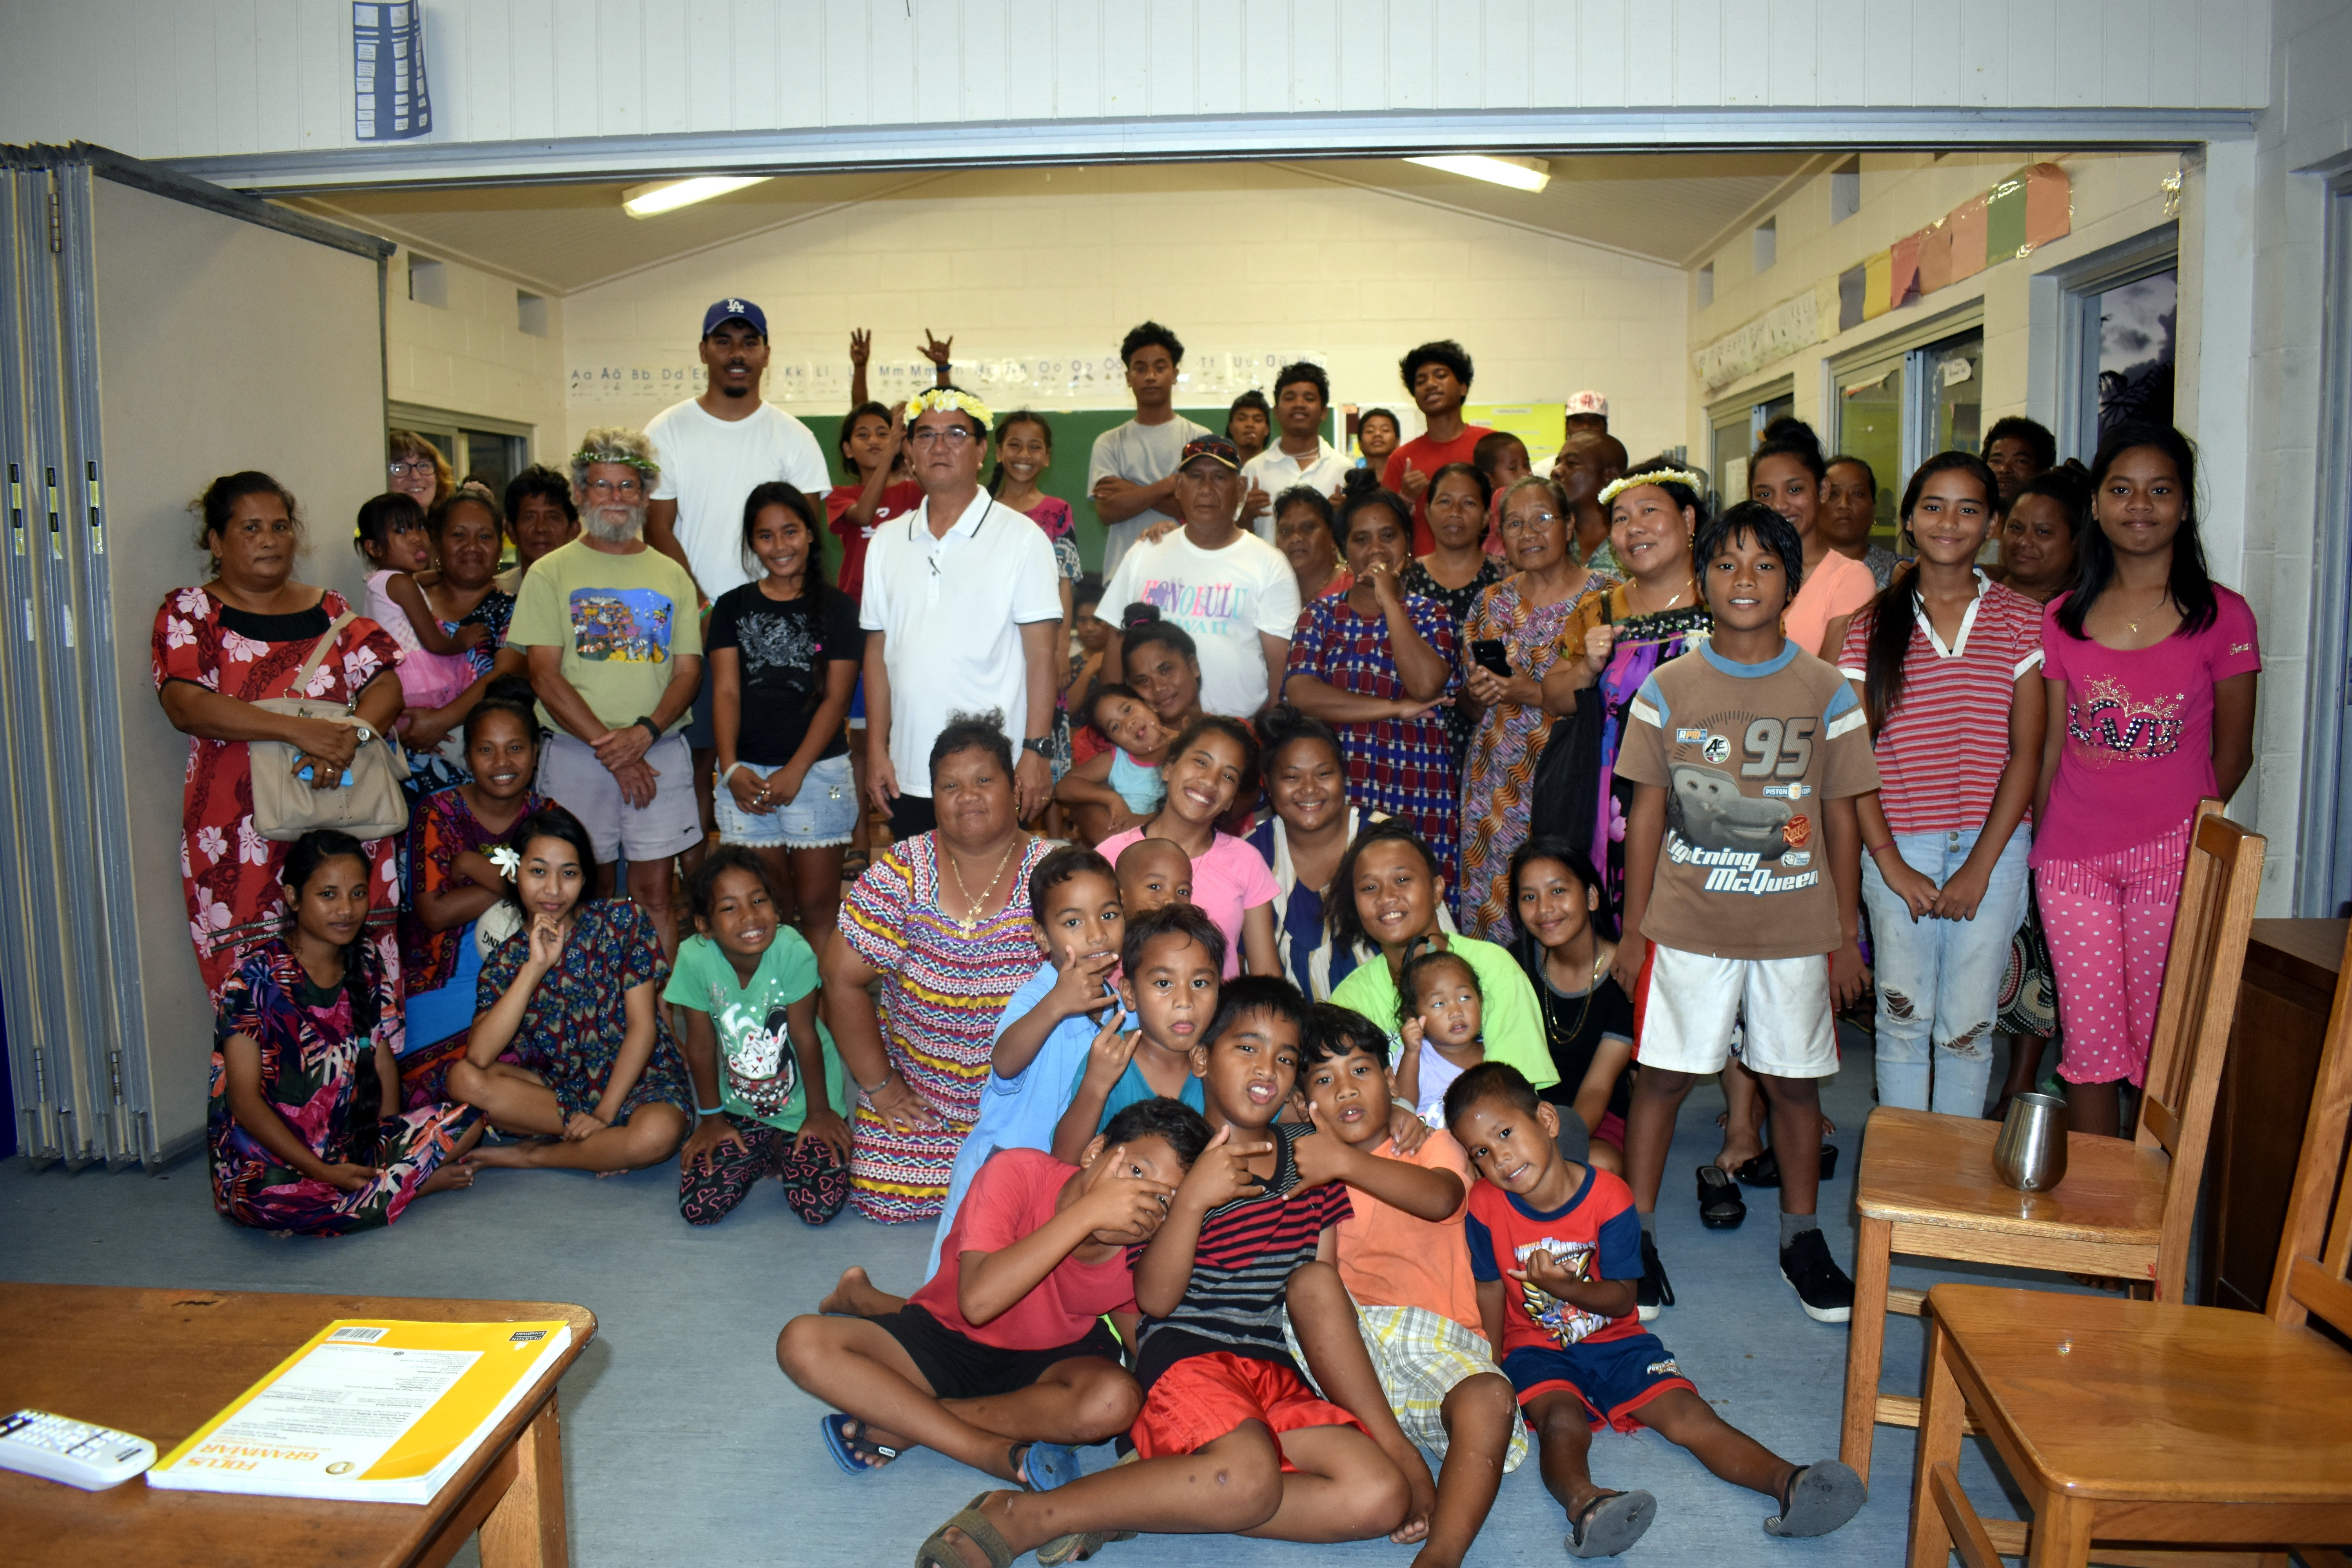 Several adults and children pose for an indoor group shot